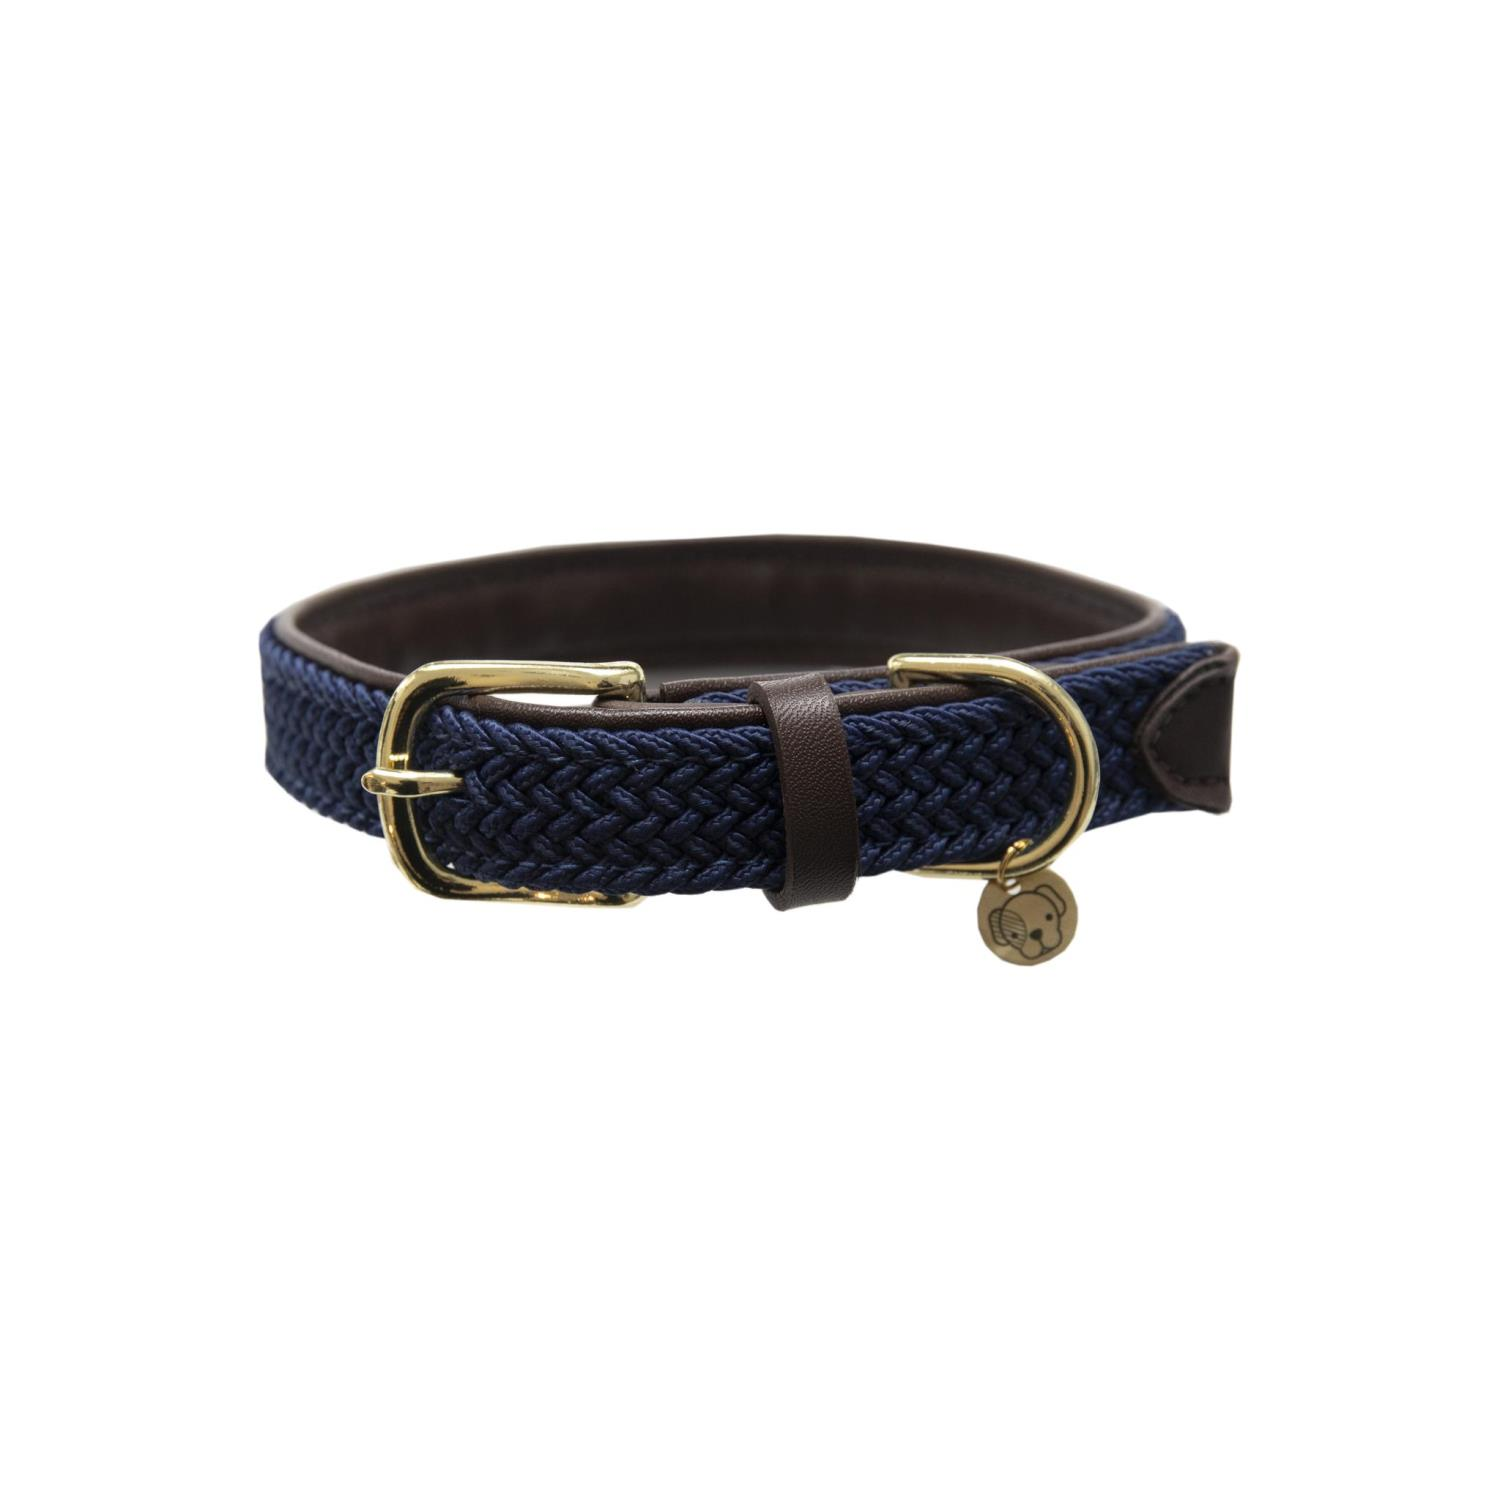 Kentucky Plaited Nylon Dog Collar